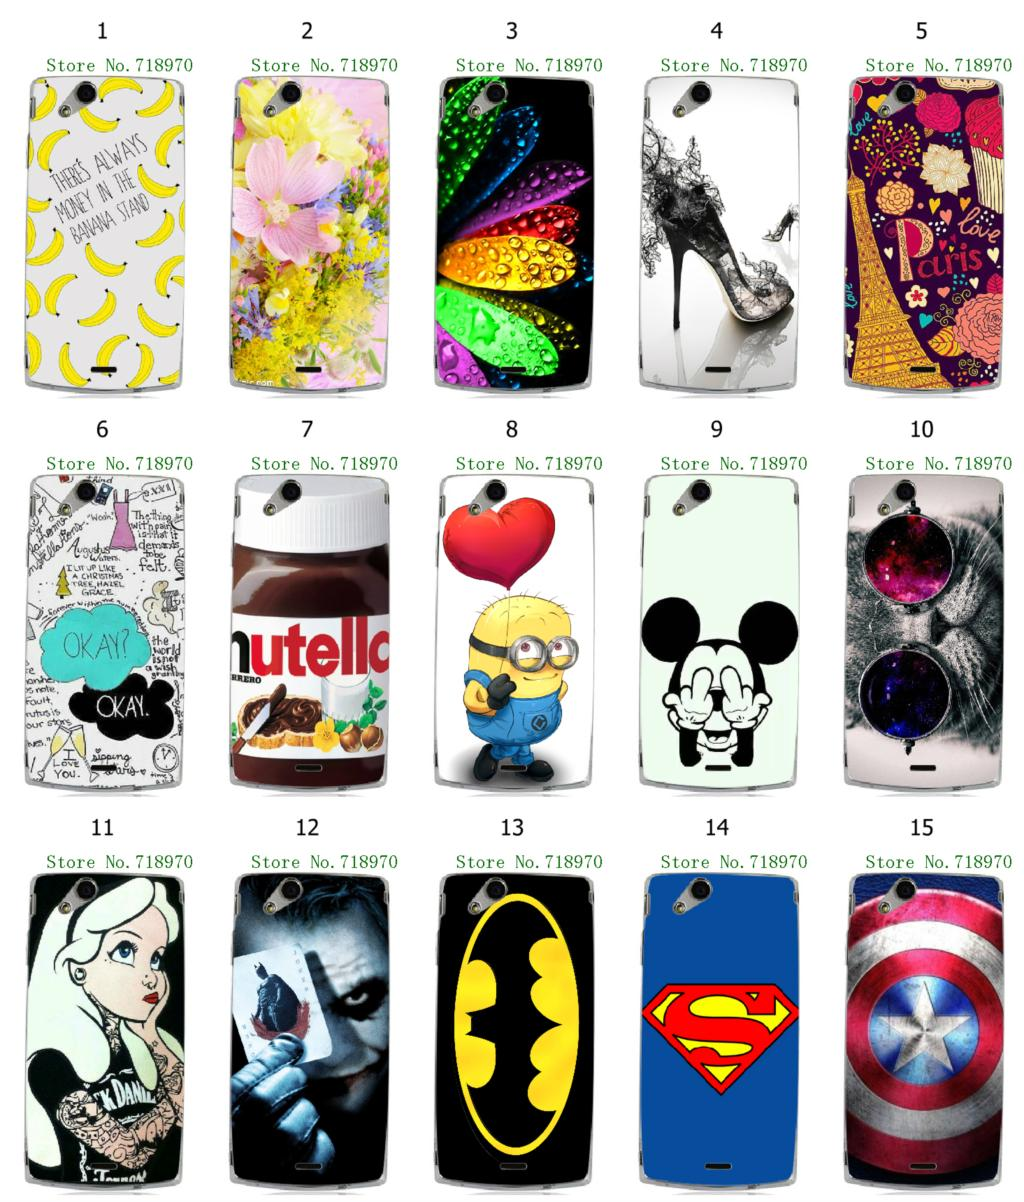 15designs hybrid retail batman Captain America white hard cover cases for Sony Ericsson X12 LT15i Xperia Arc S LT18i free shipp(China (Mainland))